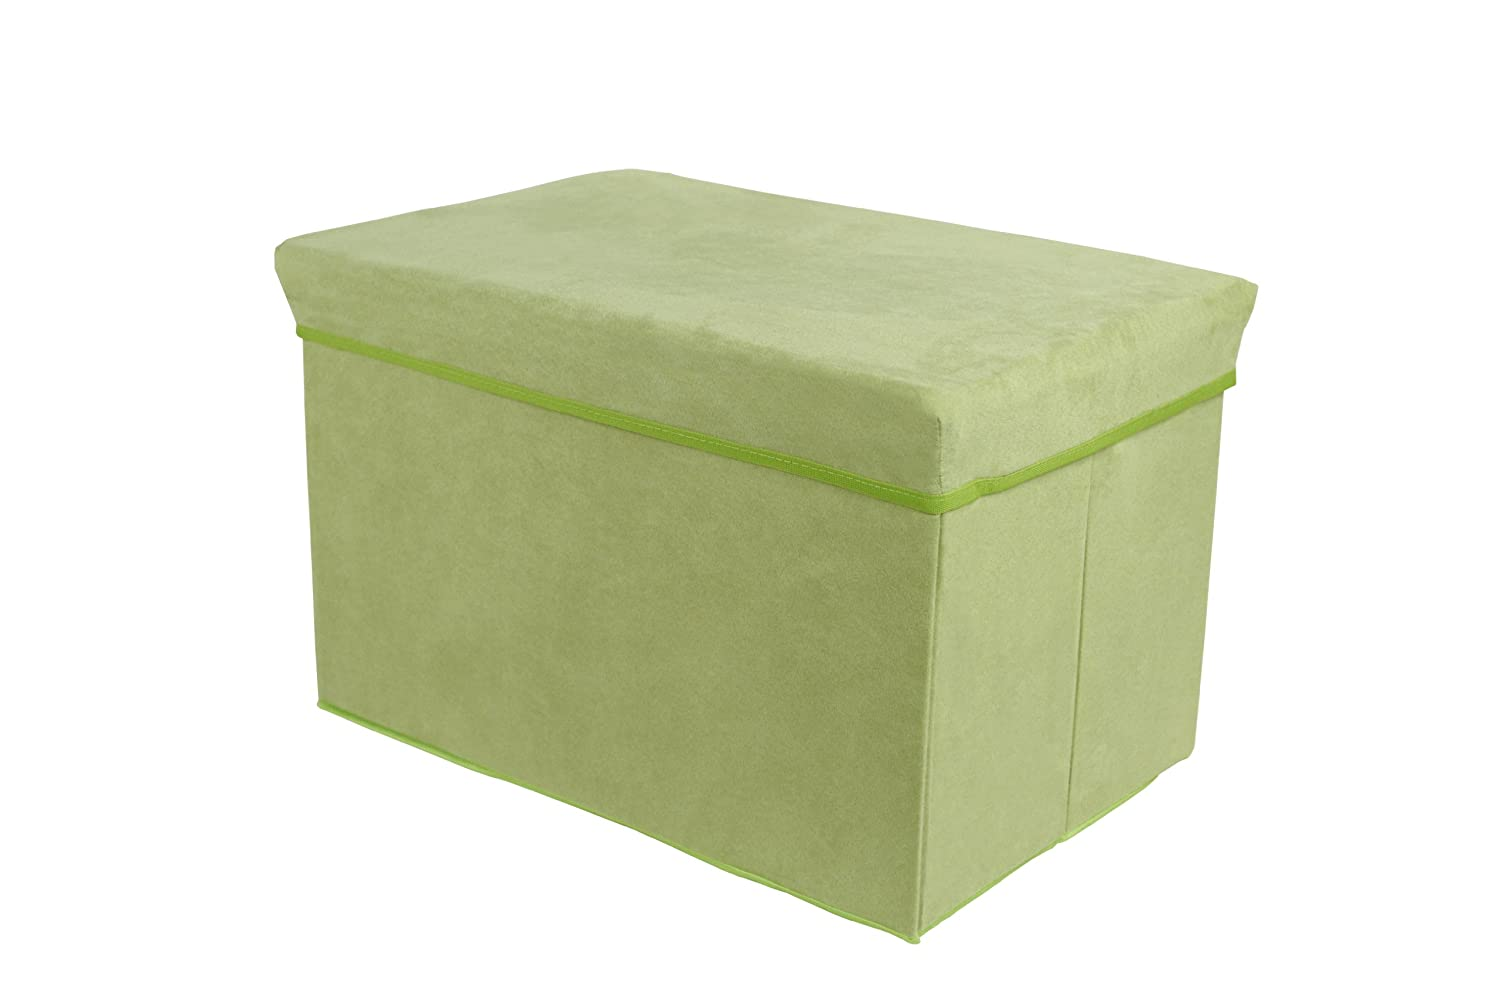 Tadpoles Rectangle Shaped Suede Storage Box Stool, Green